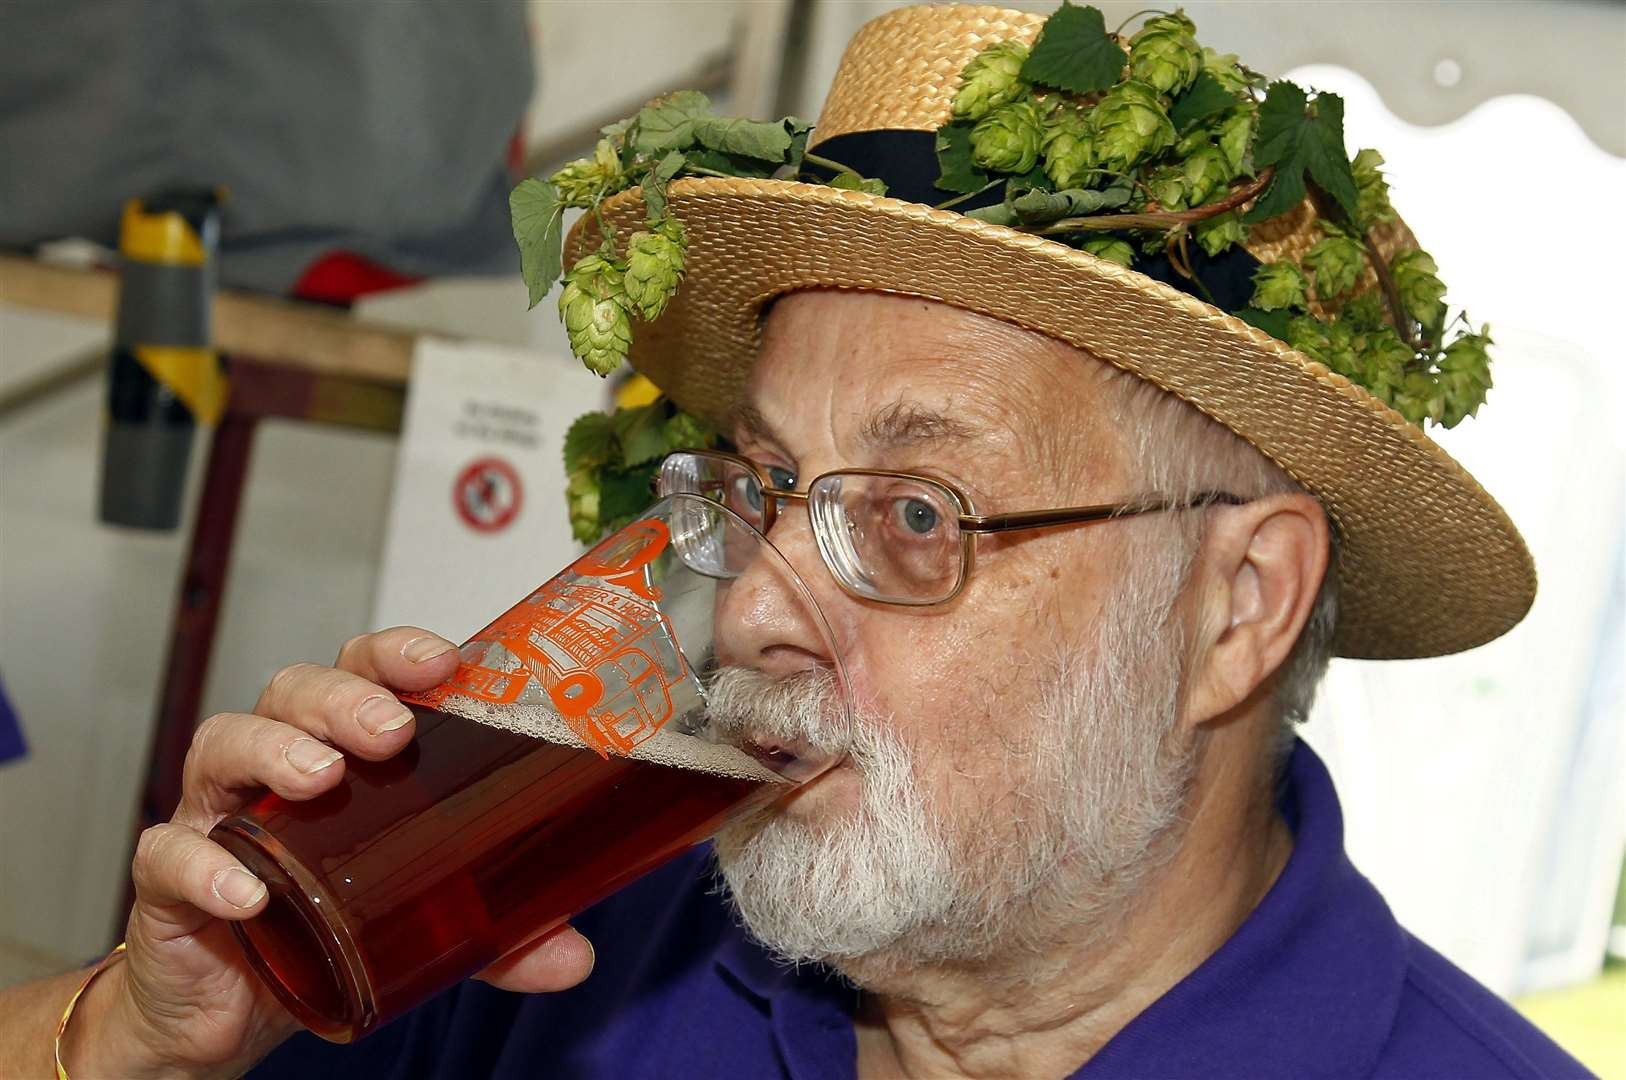 John Mills tries some ale at the festival at East Malling Research Centre last year Picture: Sean Aidan